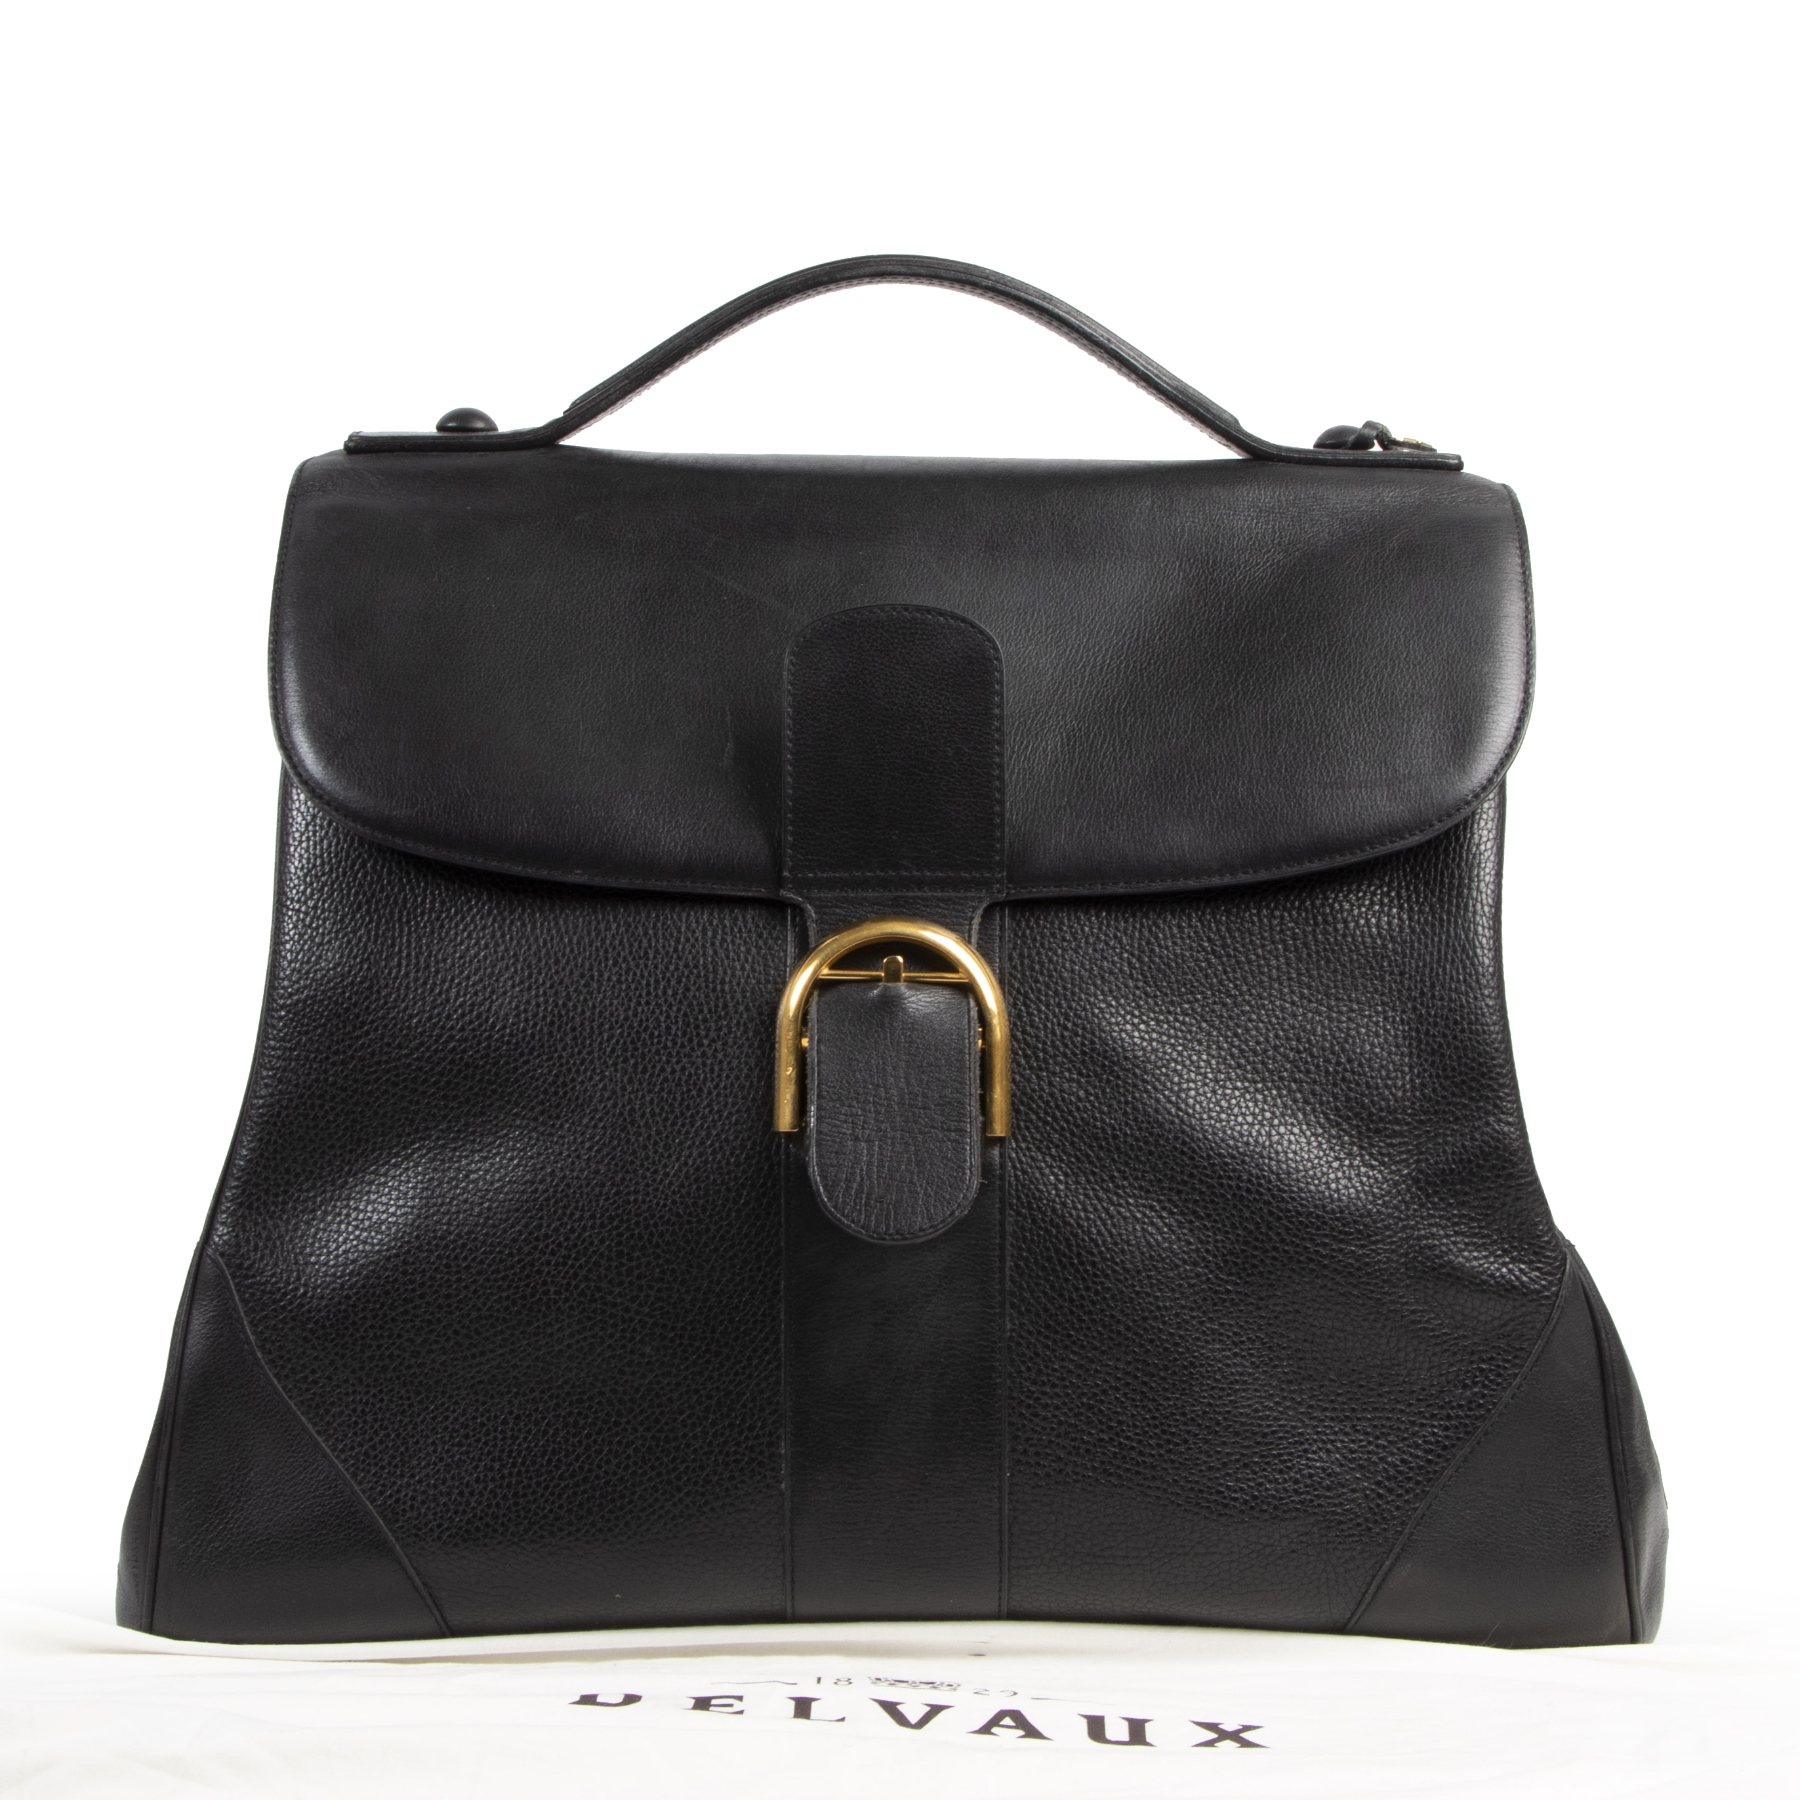 Delvaux Brillant XXL Bag for the best price available online